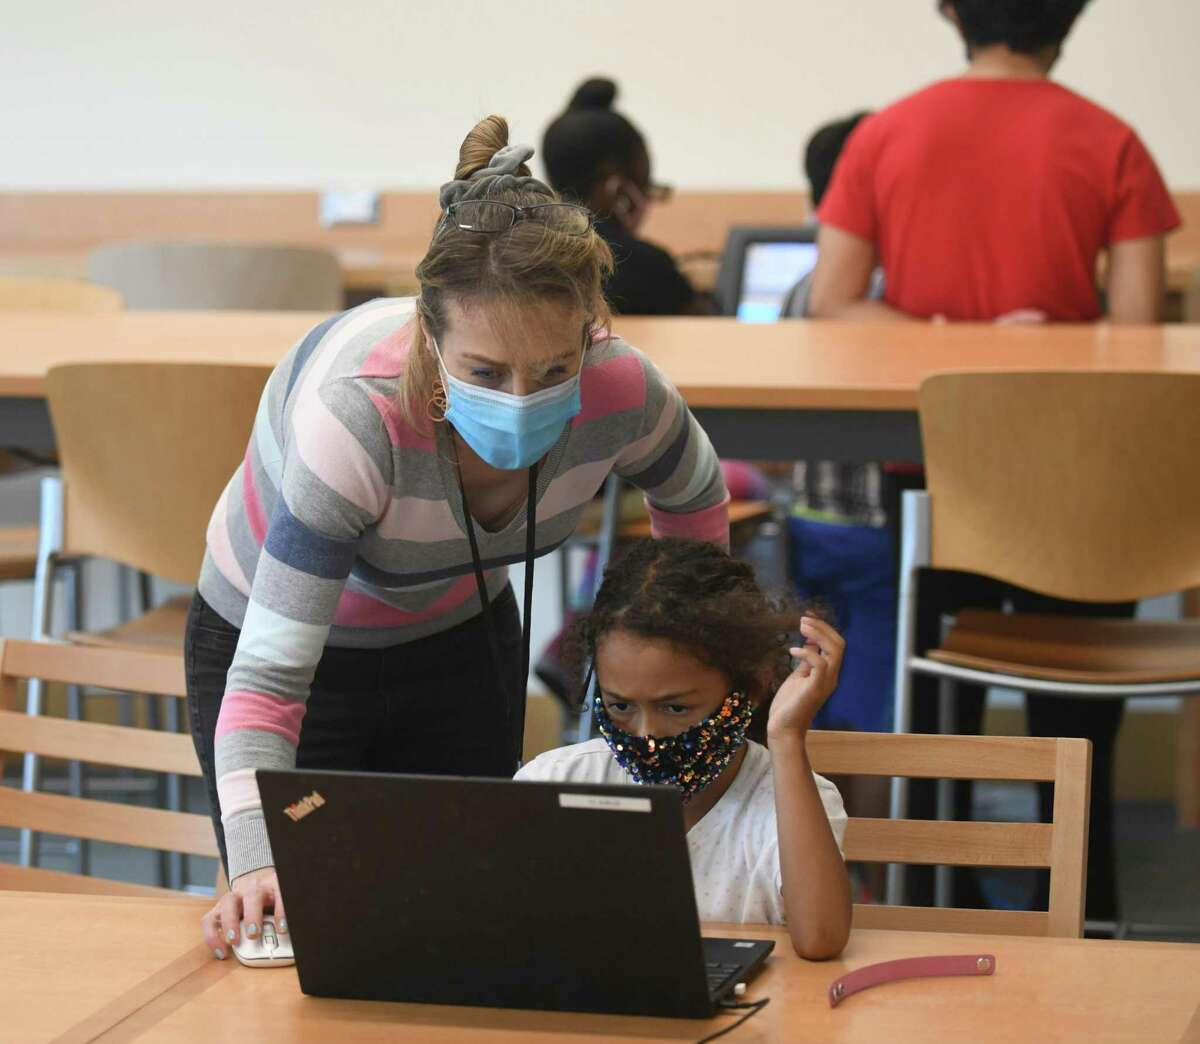 Innovation Lab Coordinator Vanessa Harrington helps Makayla Williams on the laptop at the Greenwich Library Innovation Lab in Greenwich, Conn. Tuesday, July 13, 2021. Students from the Greenwich-based social services nonprofit Community Centers Inc. are visiting the Innovation Lab every Tuesday as part of the CCI Summer Program. They're free to create and experiment with many advanced tools such as 3D printers, laser cutters and engravers, VHS to DVD converters, and much more.